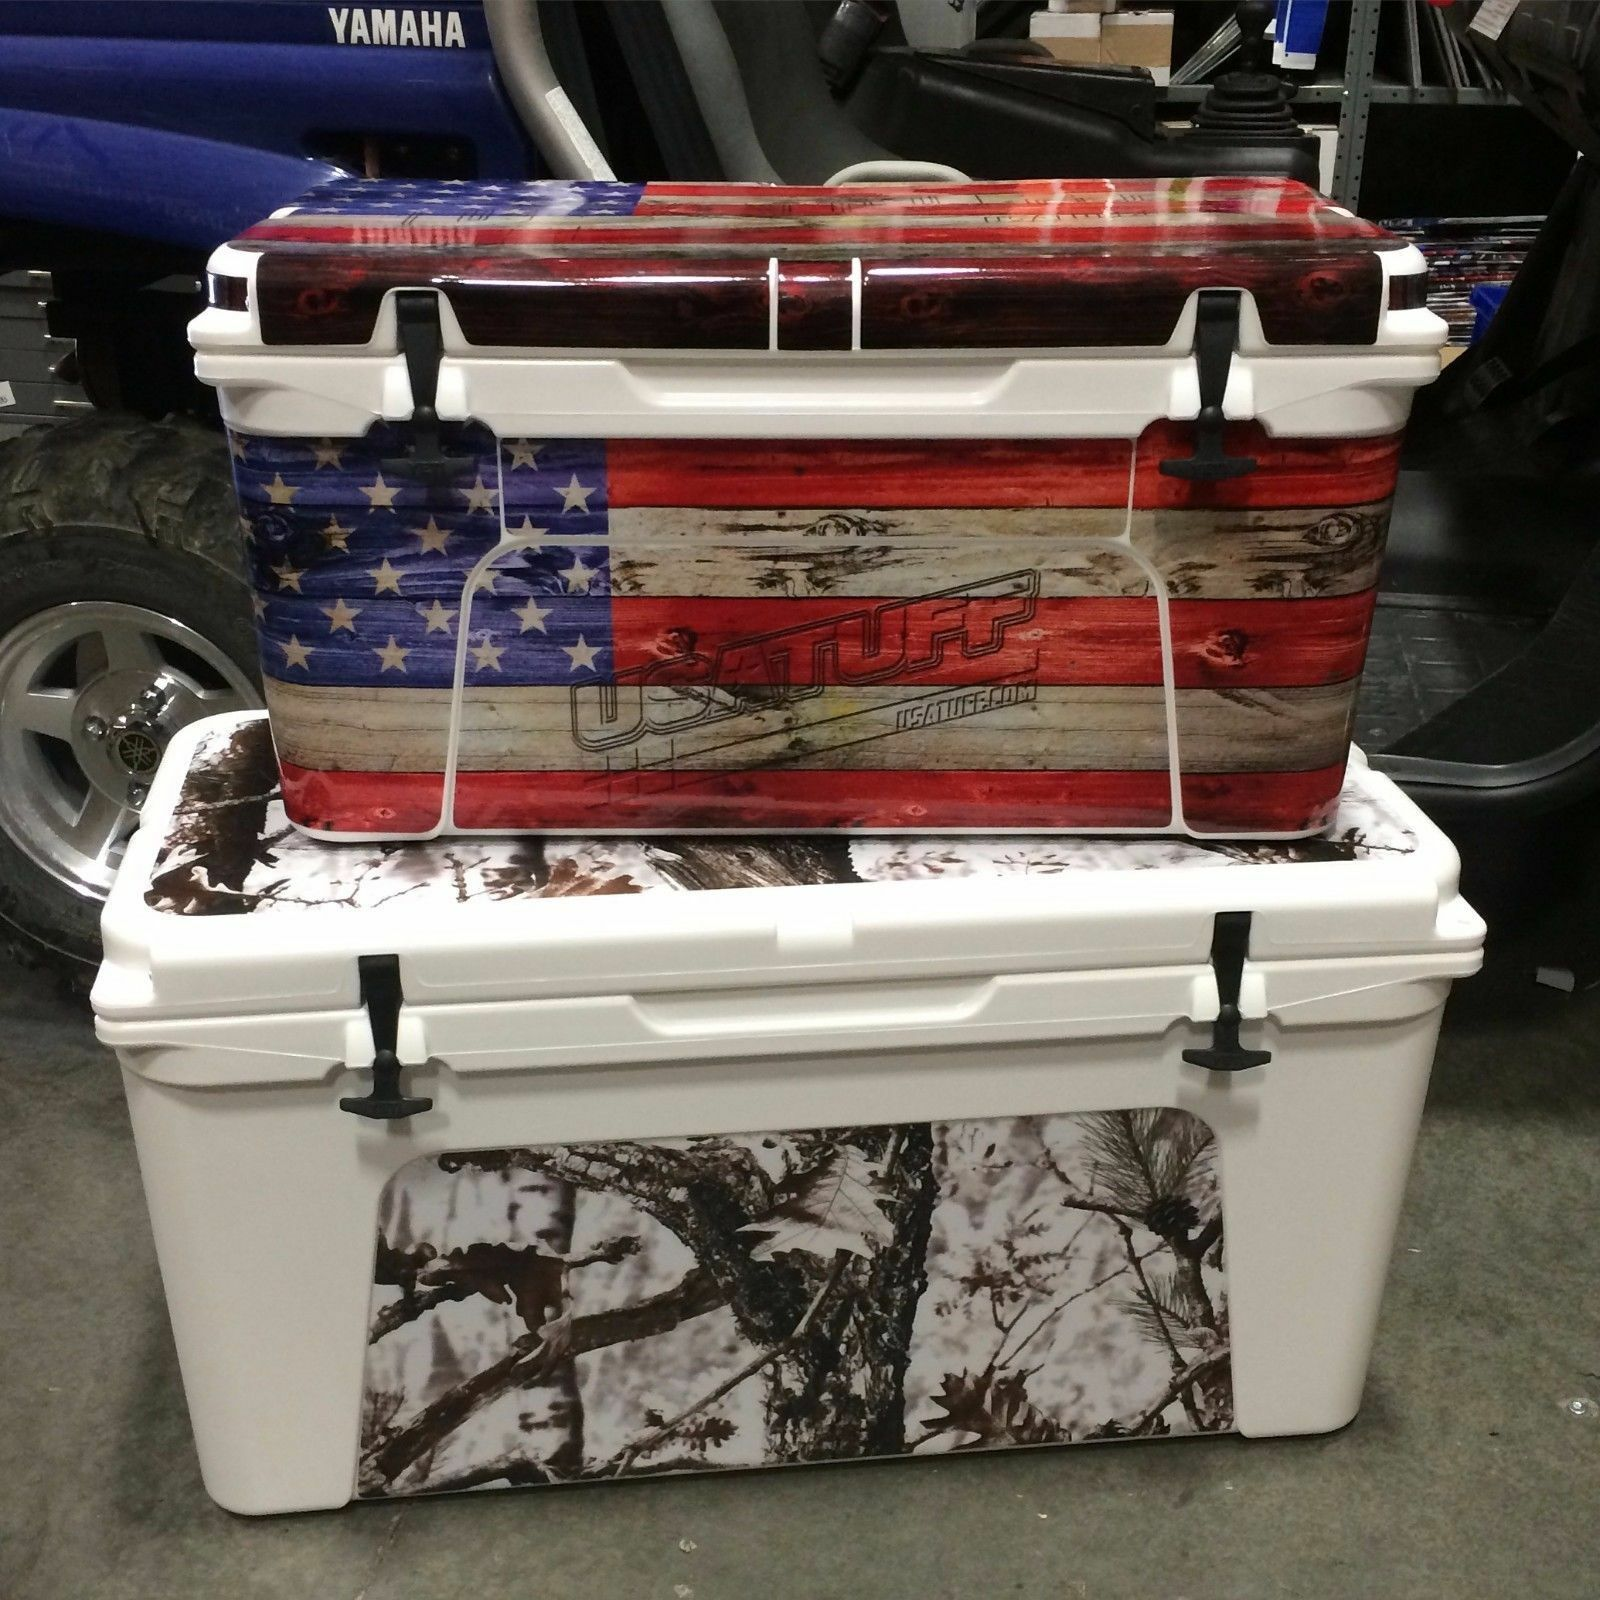 USATuff Decal Wrap Full Kit fits IGLOO Sportsman 20qt Cooler 2nd 2nd Cooler Amen Flag WD 660718